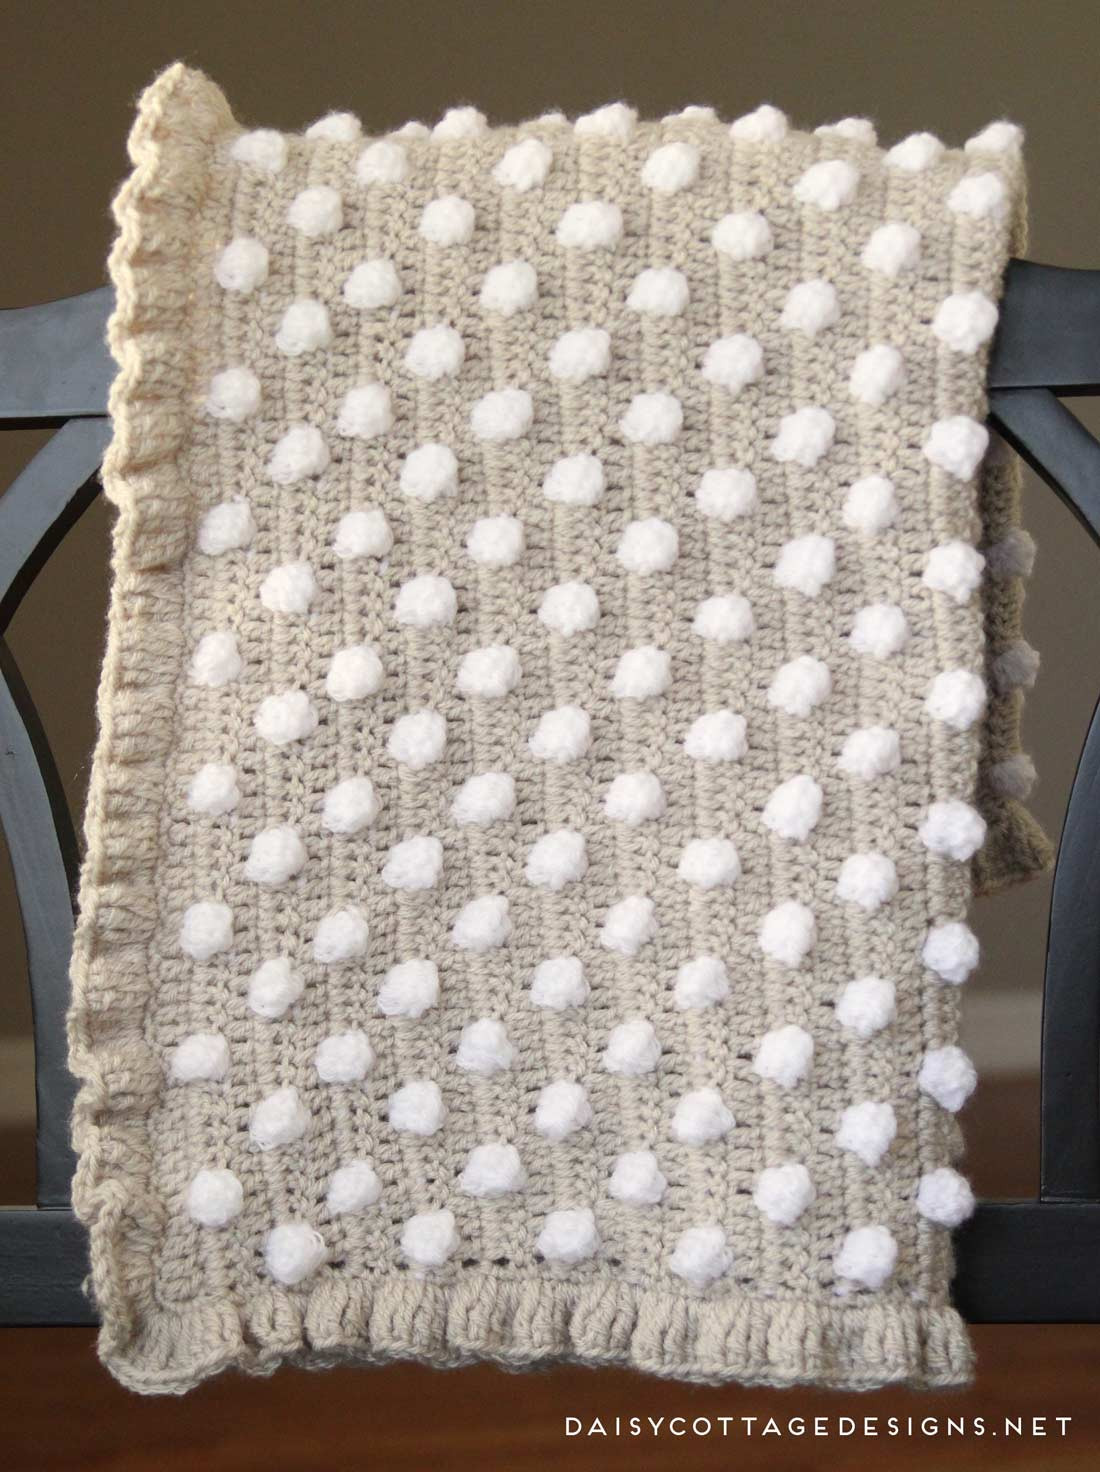 Free Crochet Baby Blankets Fresh Crochet Baby Blanket Pattern From Daisy Cottage Designs Of Incredible 43 Ideas Free Crochet Baby Blankets